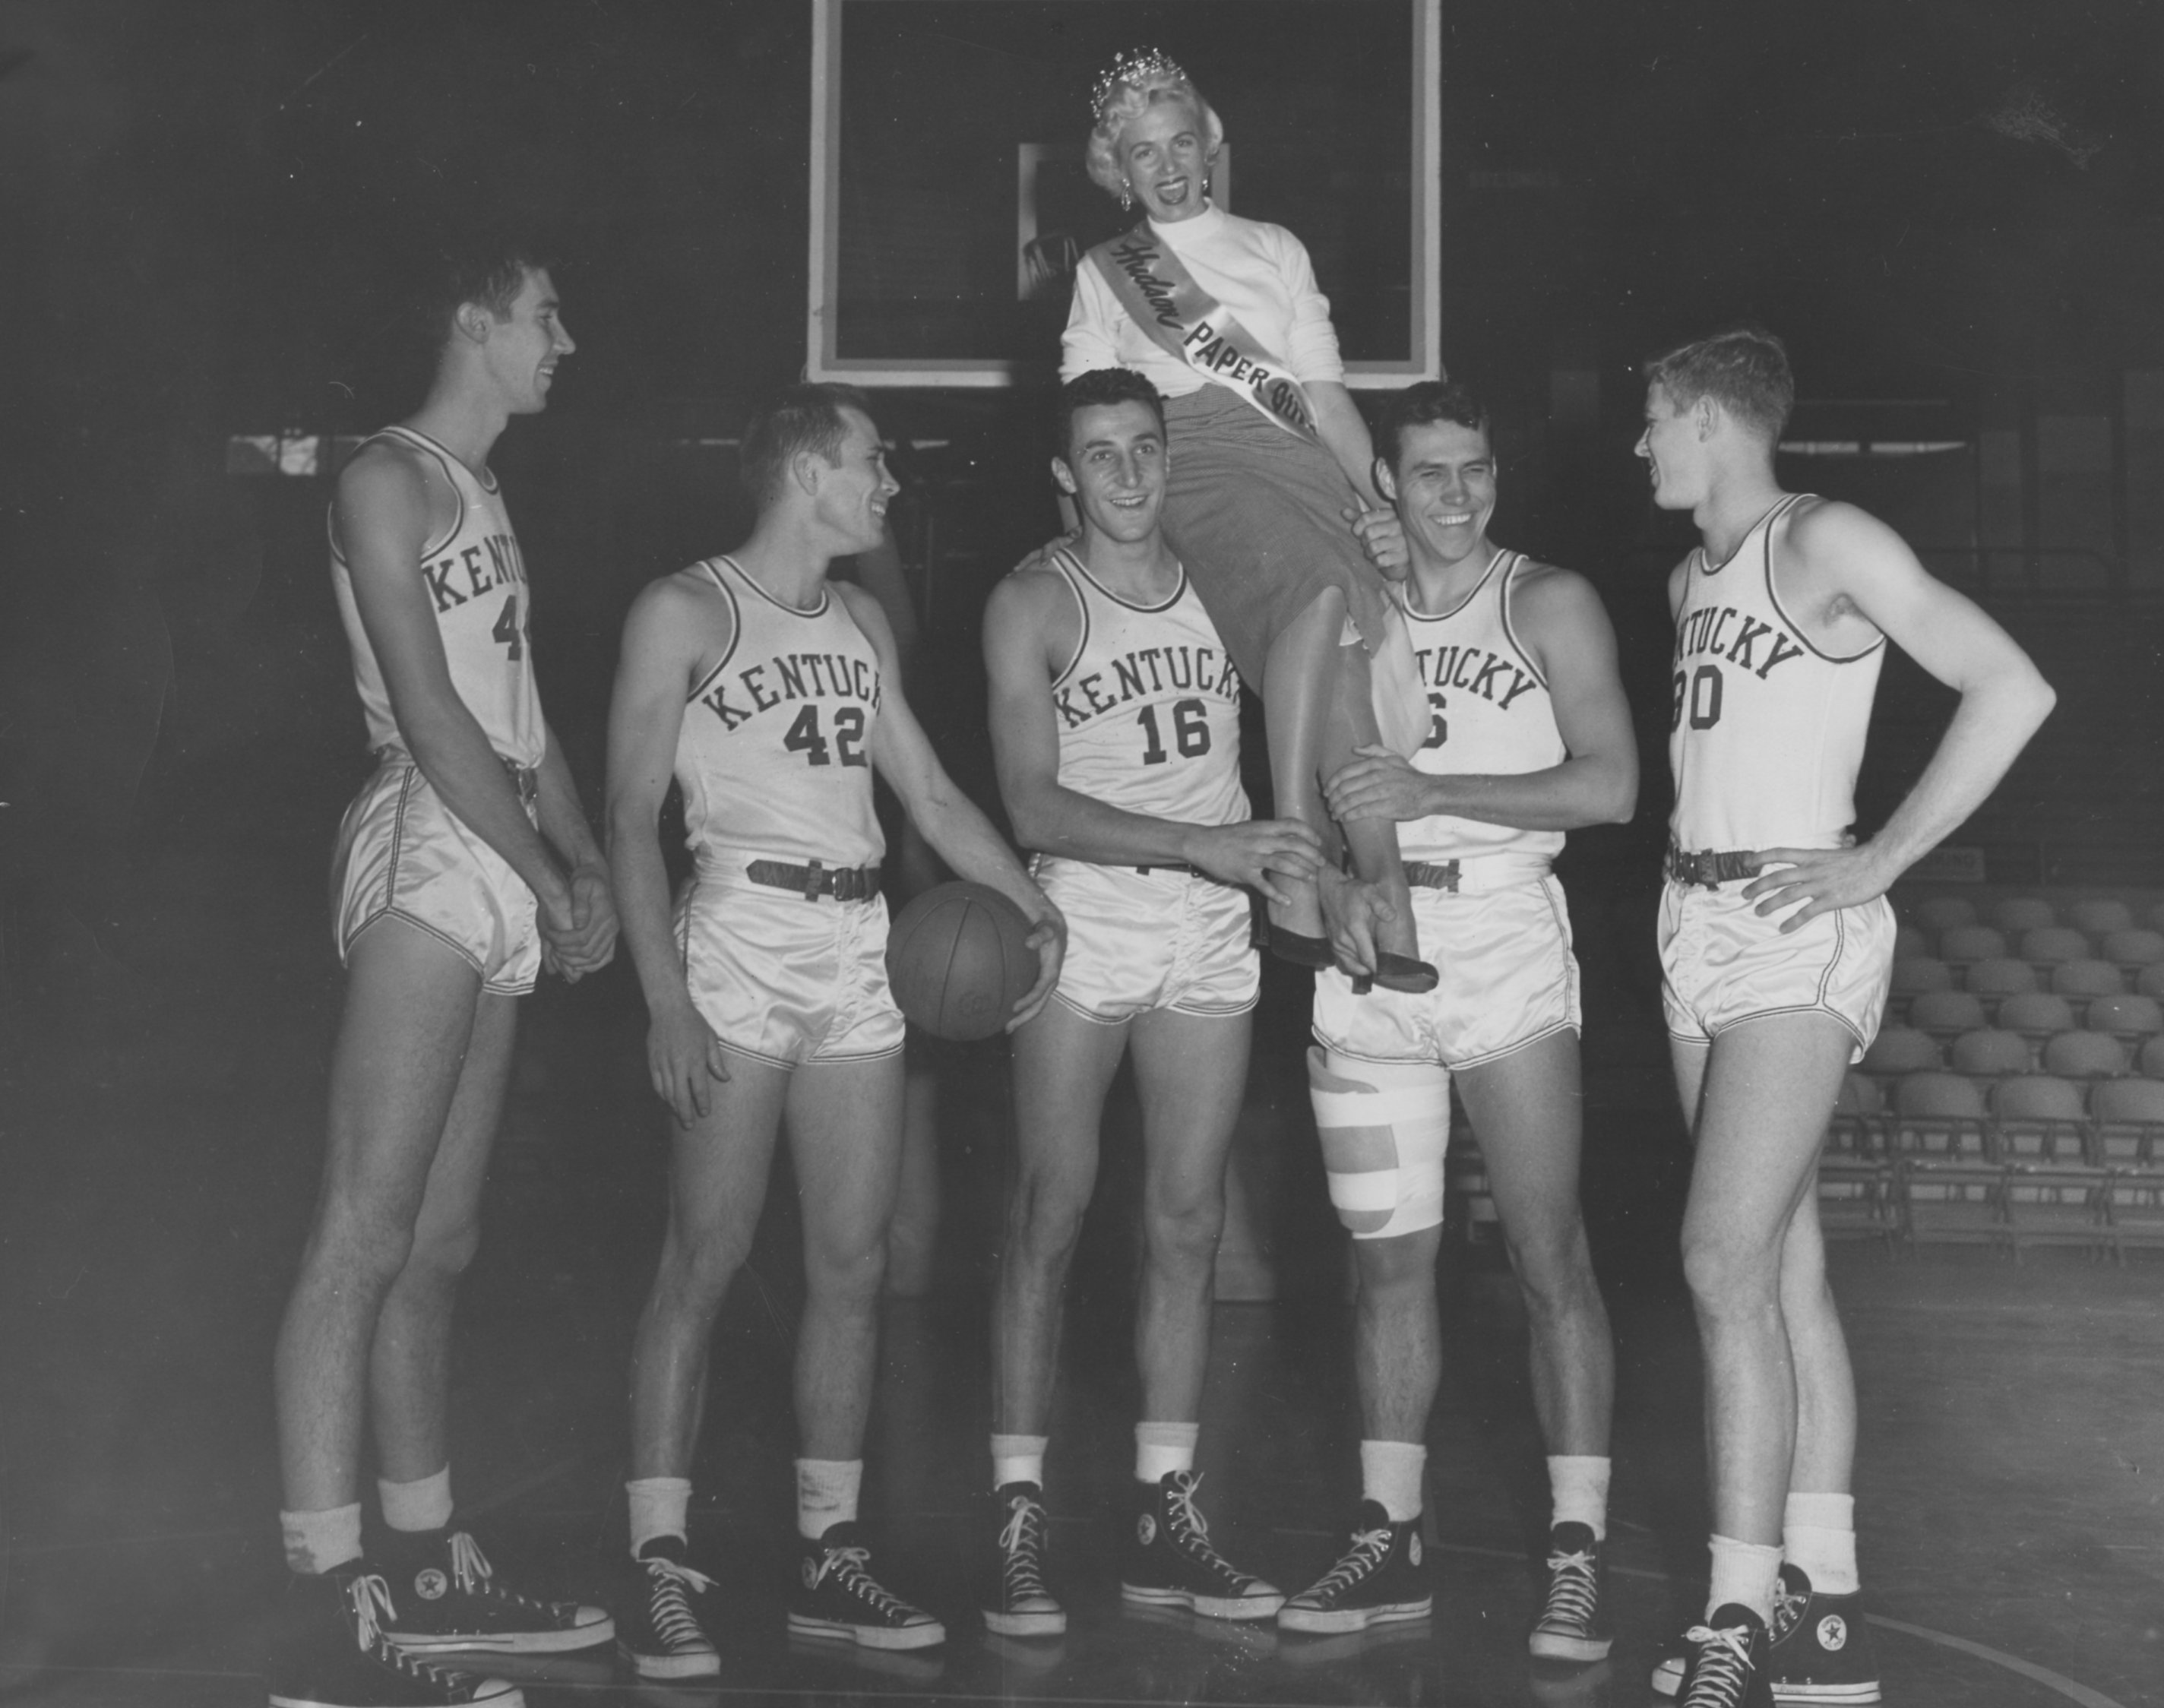 Basketball team members Lou Tsioropoulos 16 pictured holding